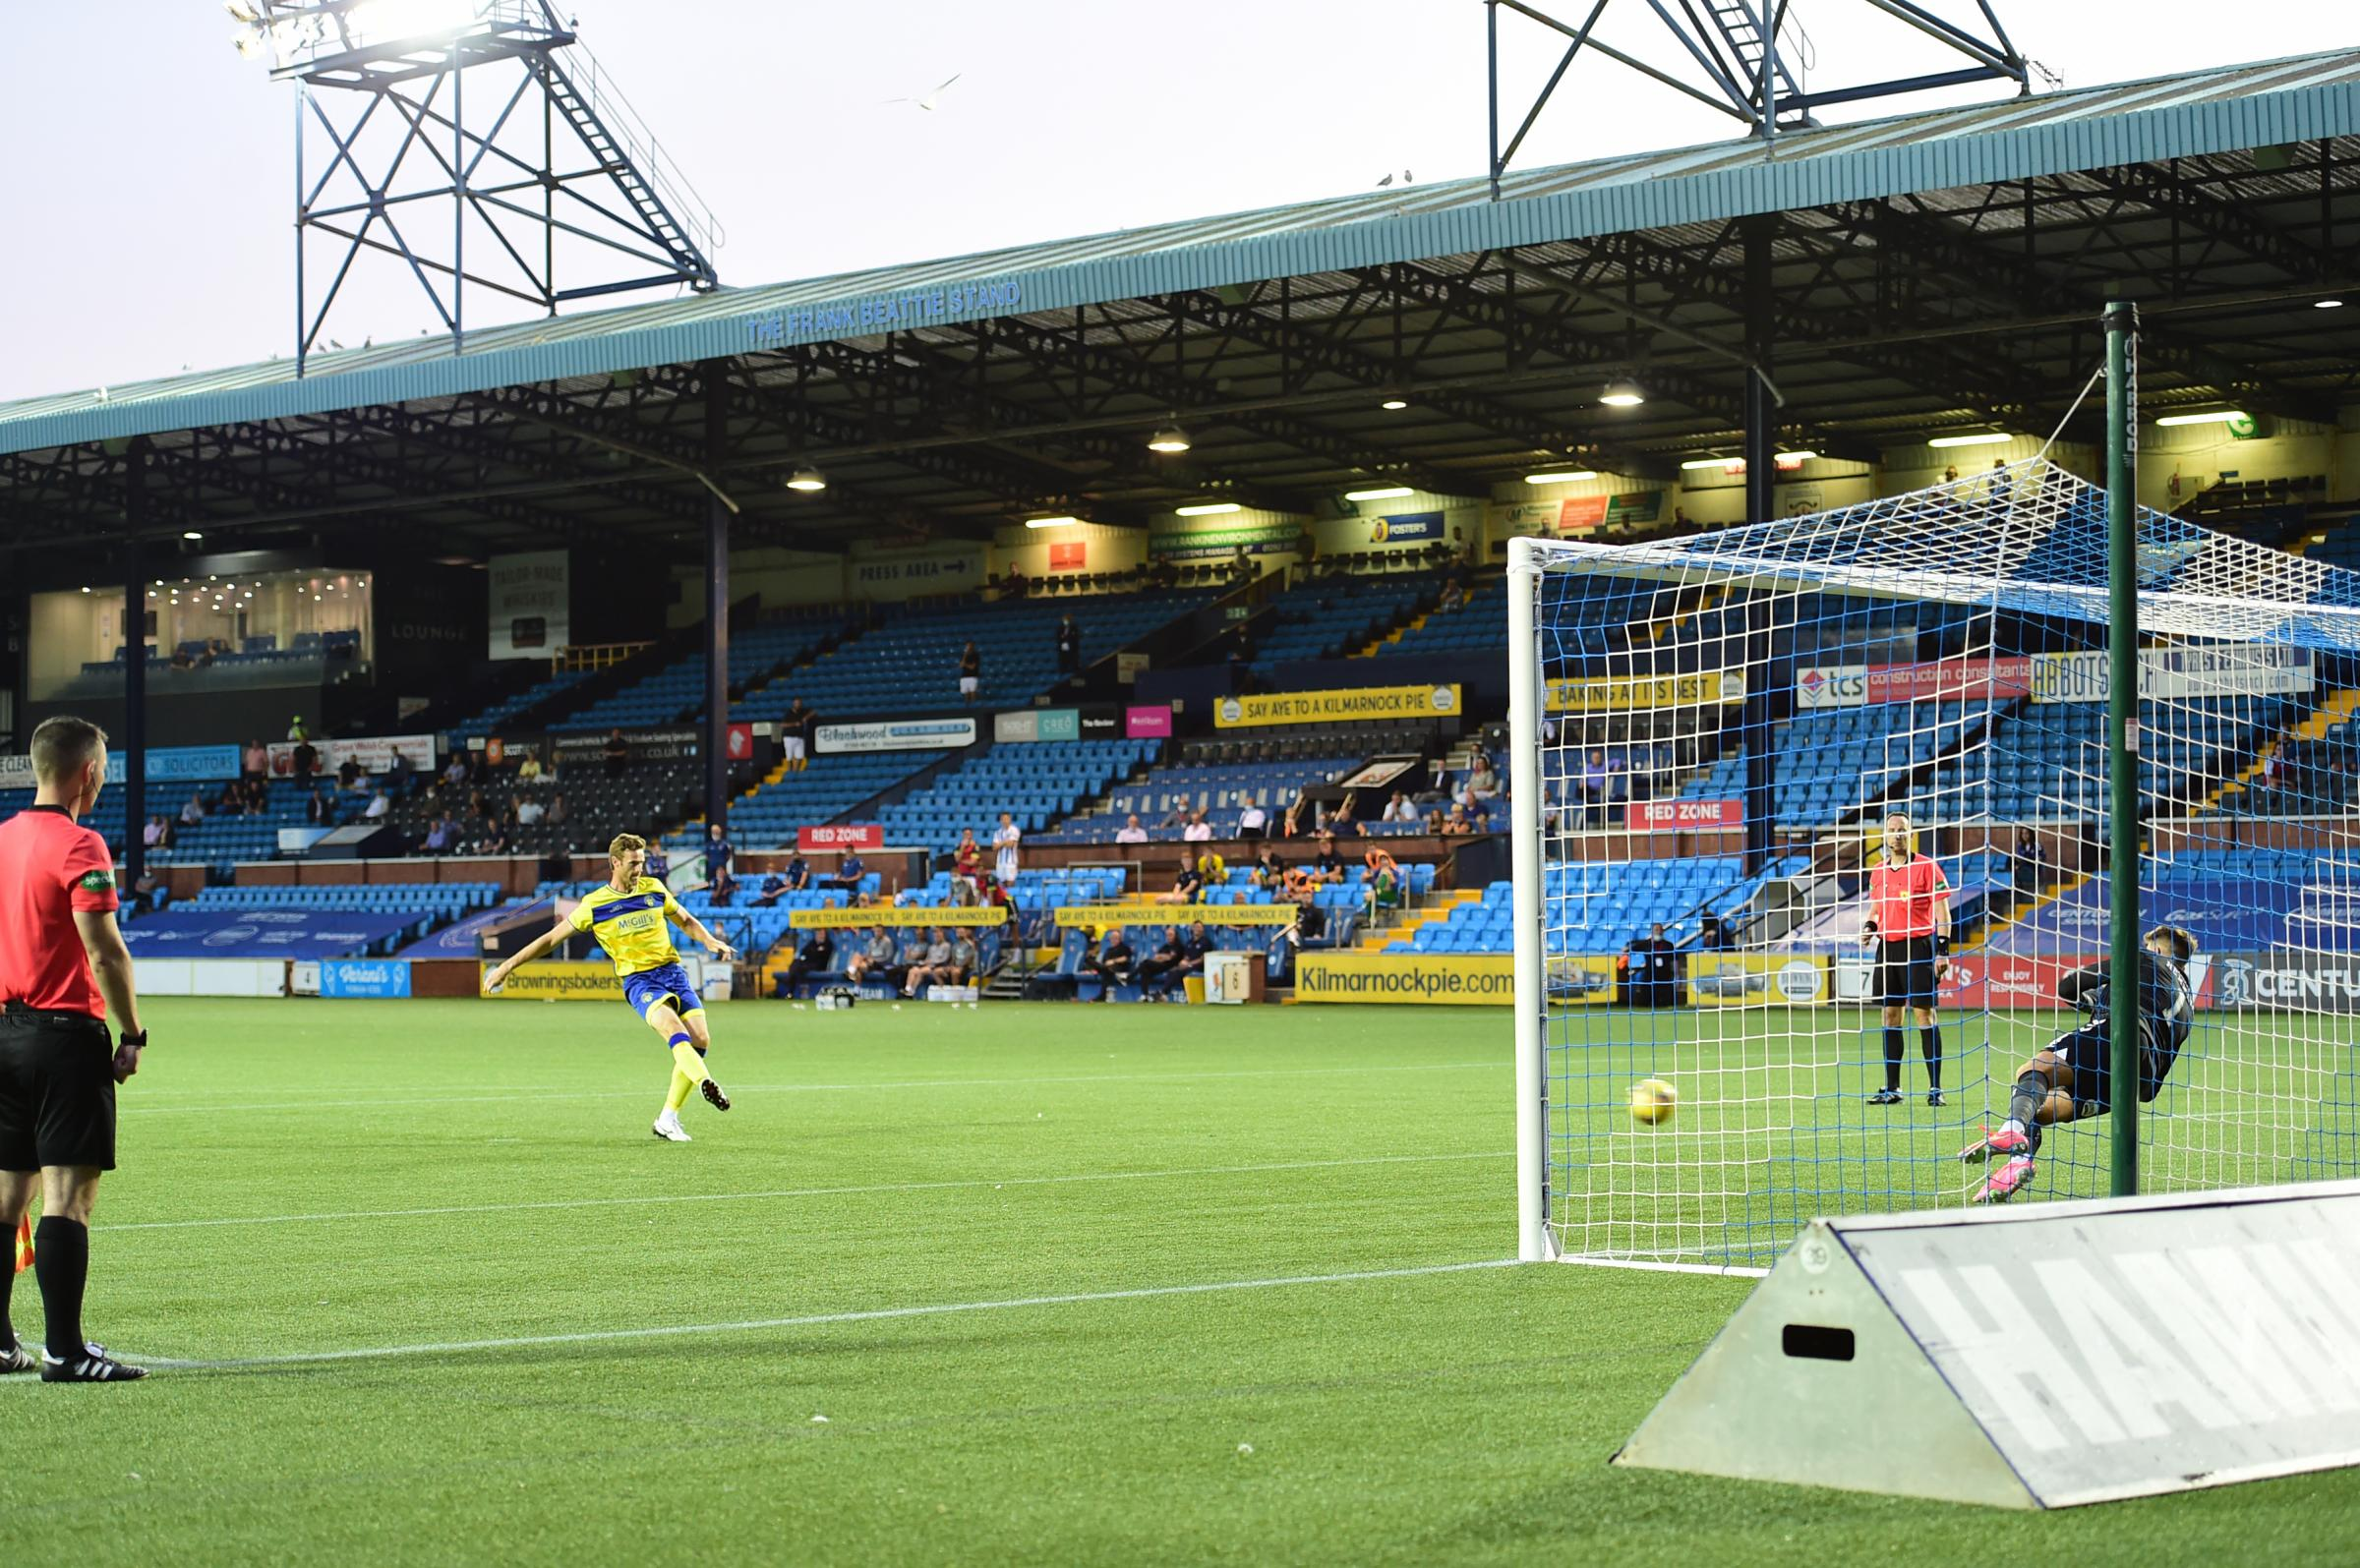 PICTURE GALLERY: Morton lose in penalty shoot-out  against Kilmarnock